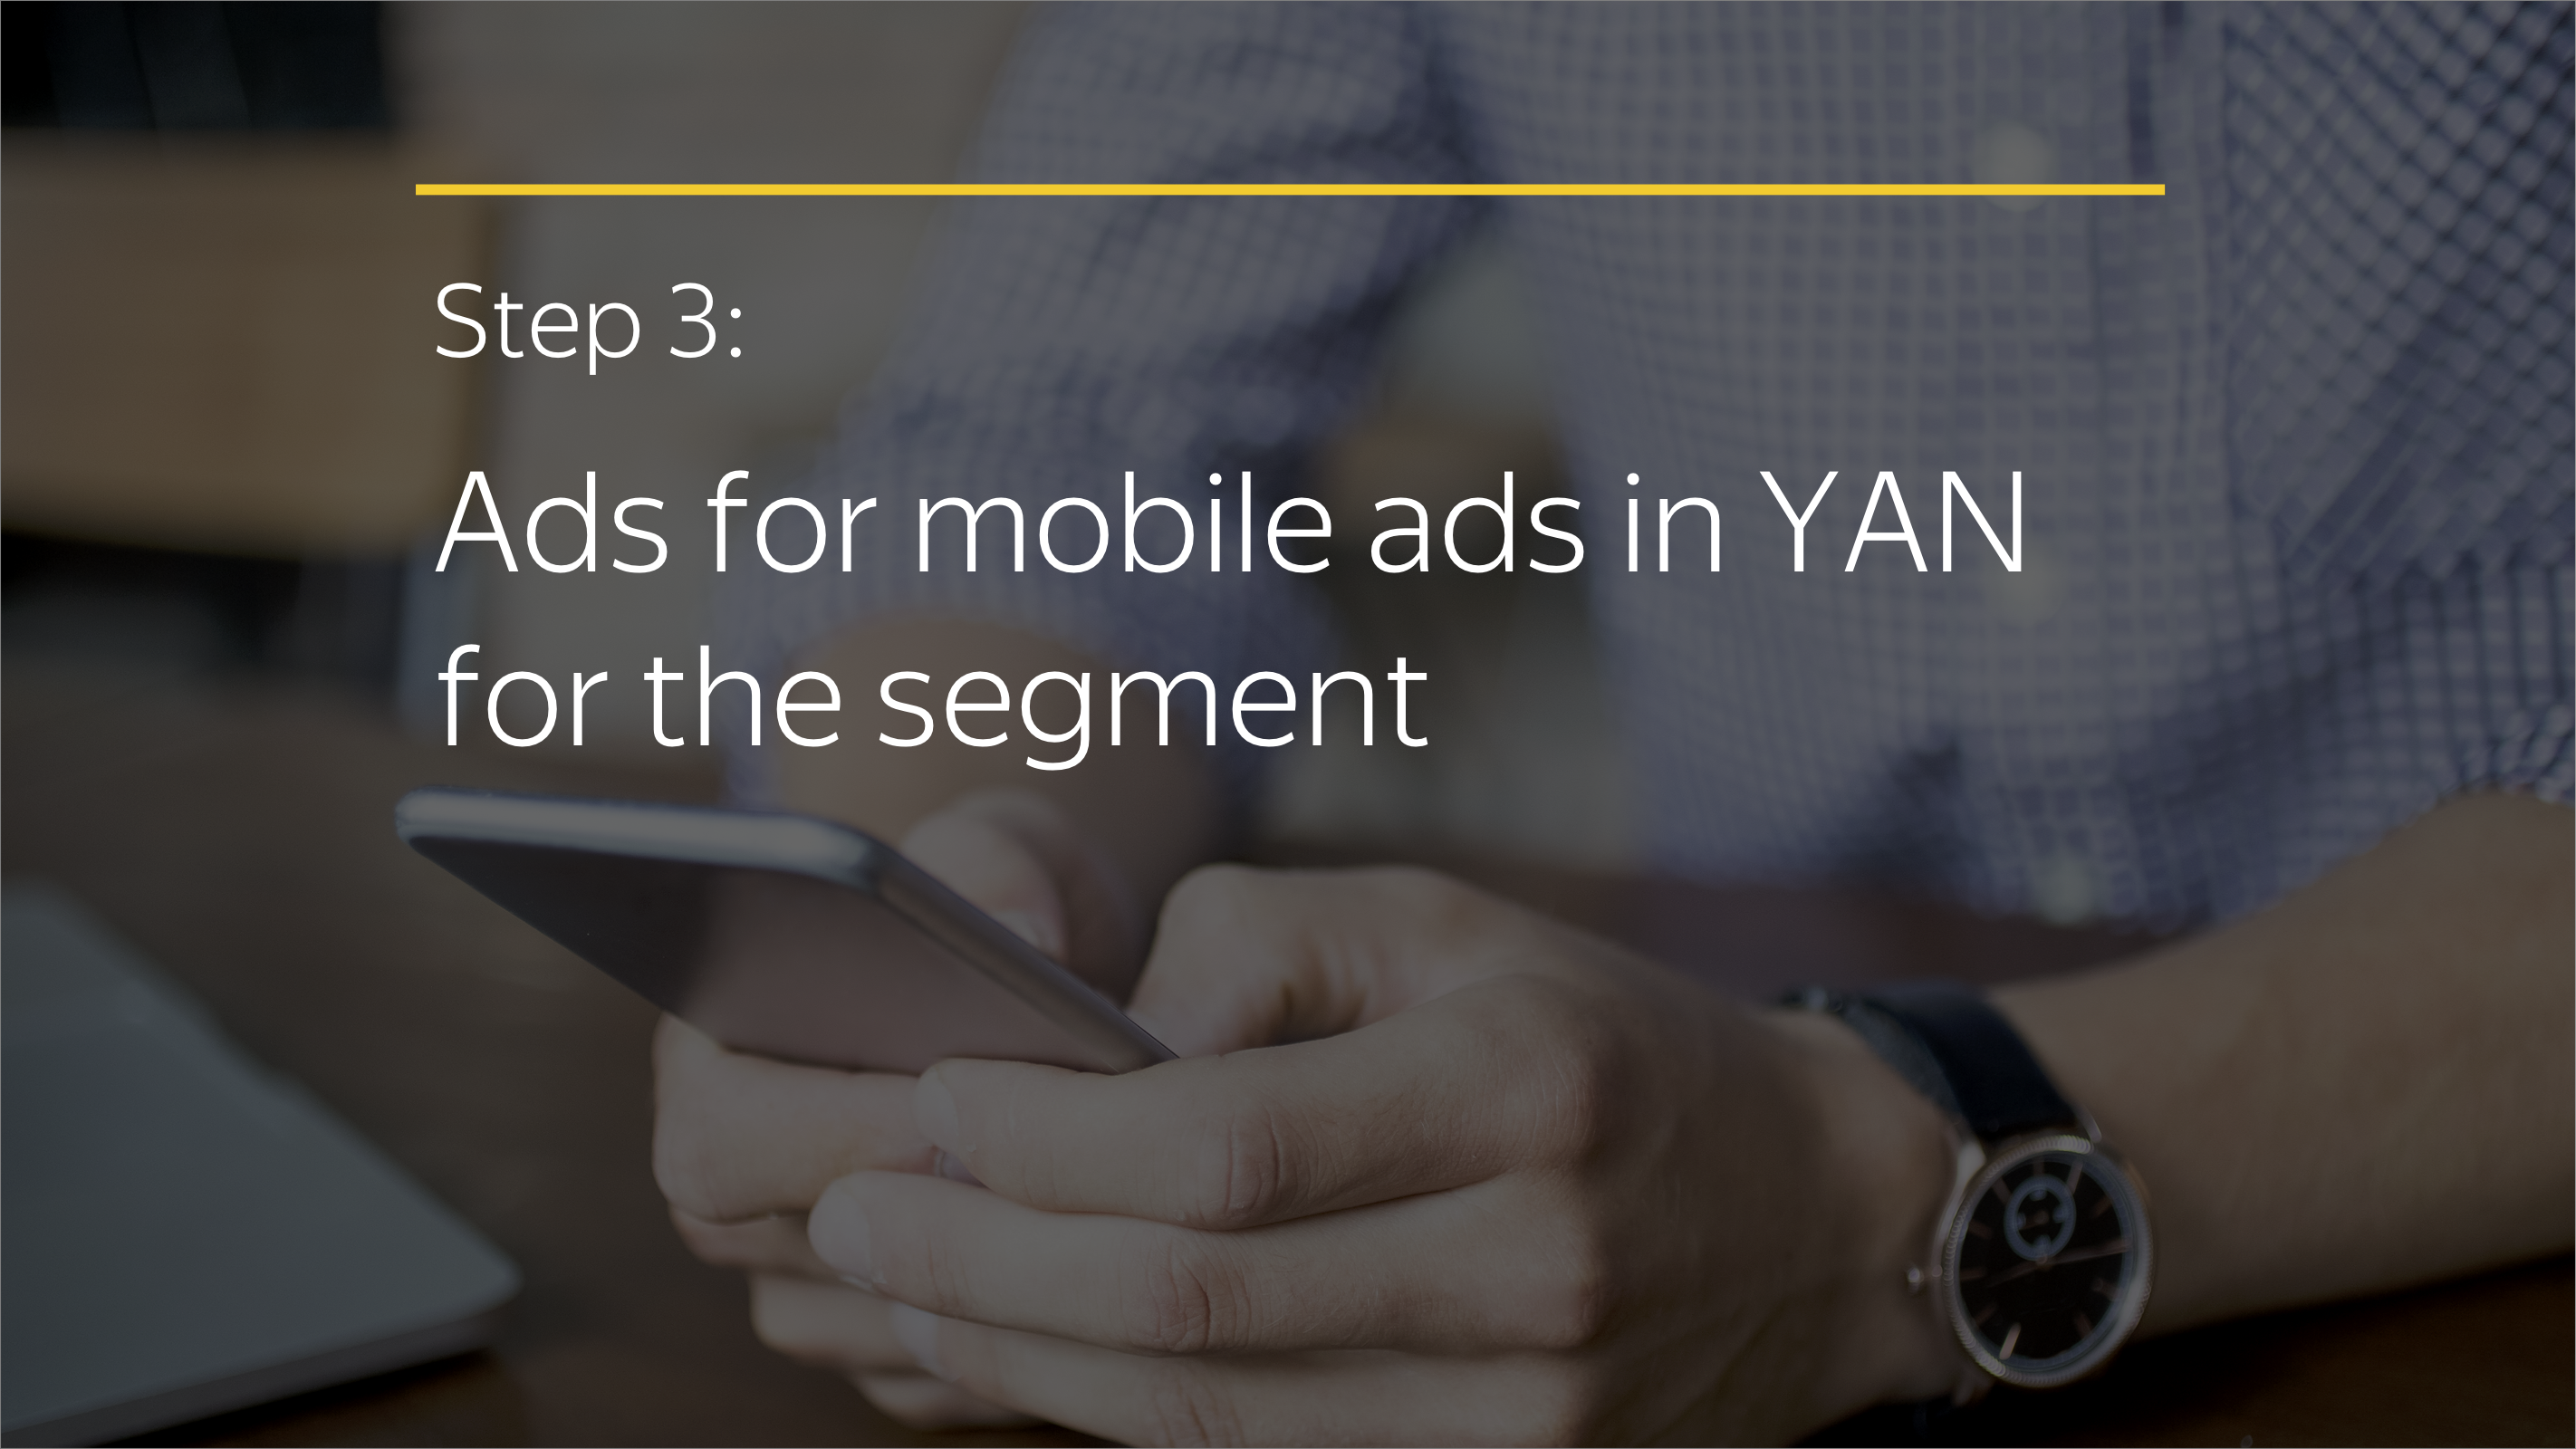 Step 3: Ads for mobile ads in YAN for the segment